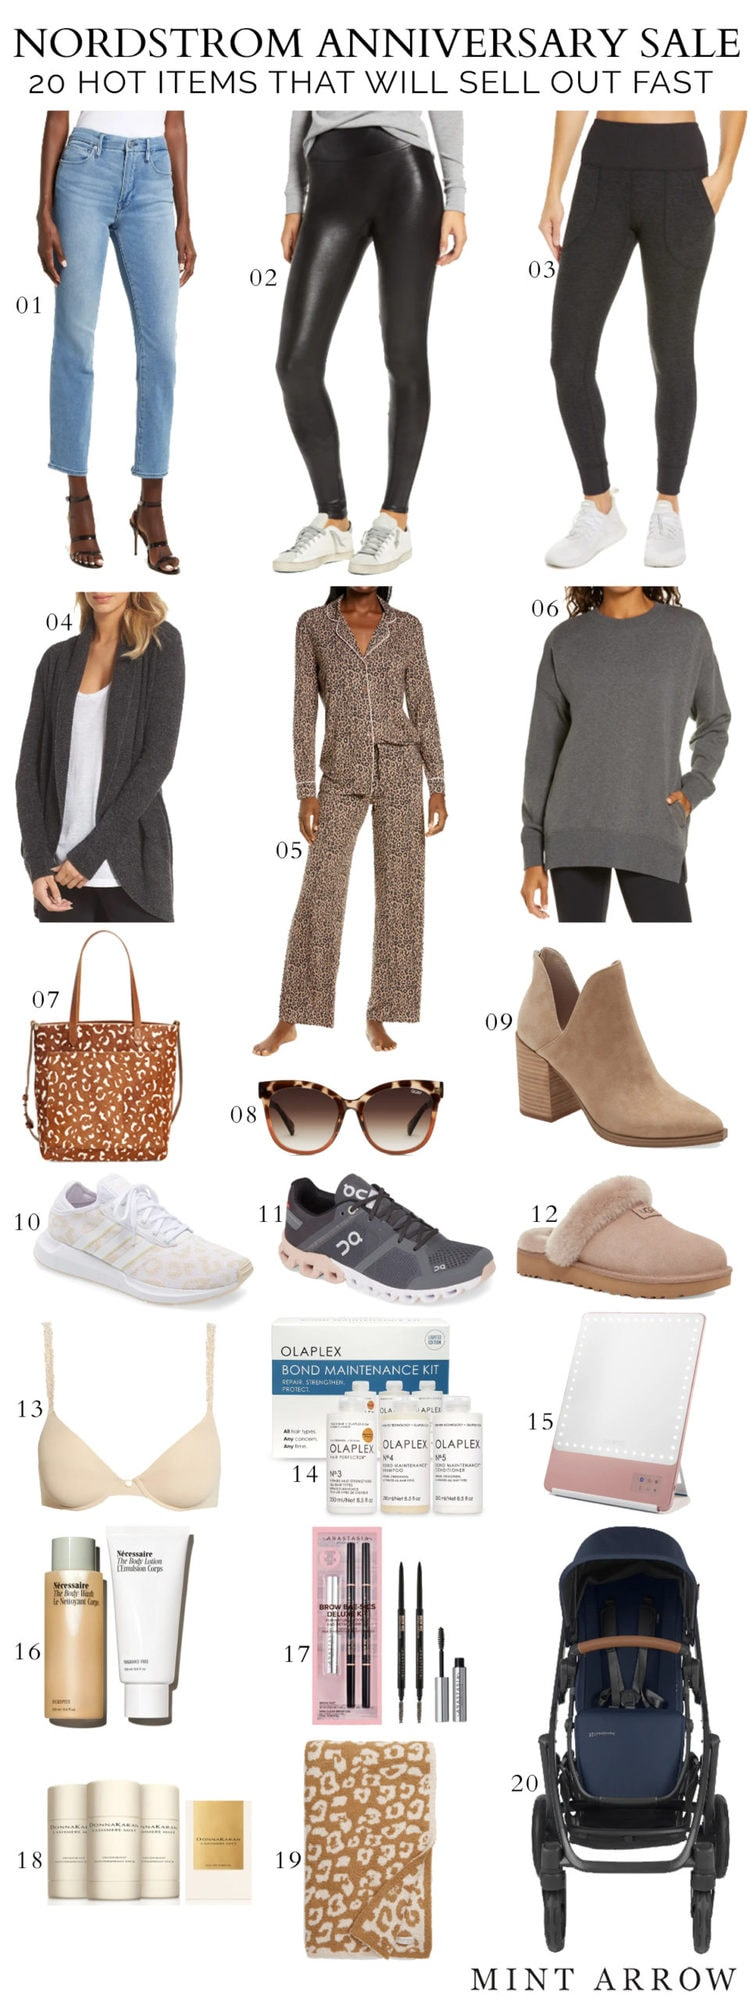 nordstrom anniversary sale what to buy first